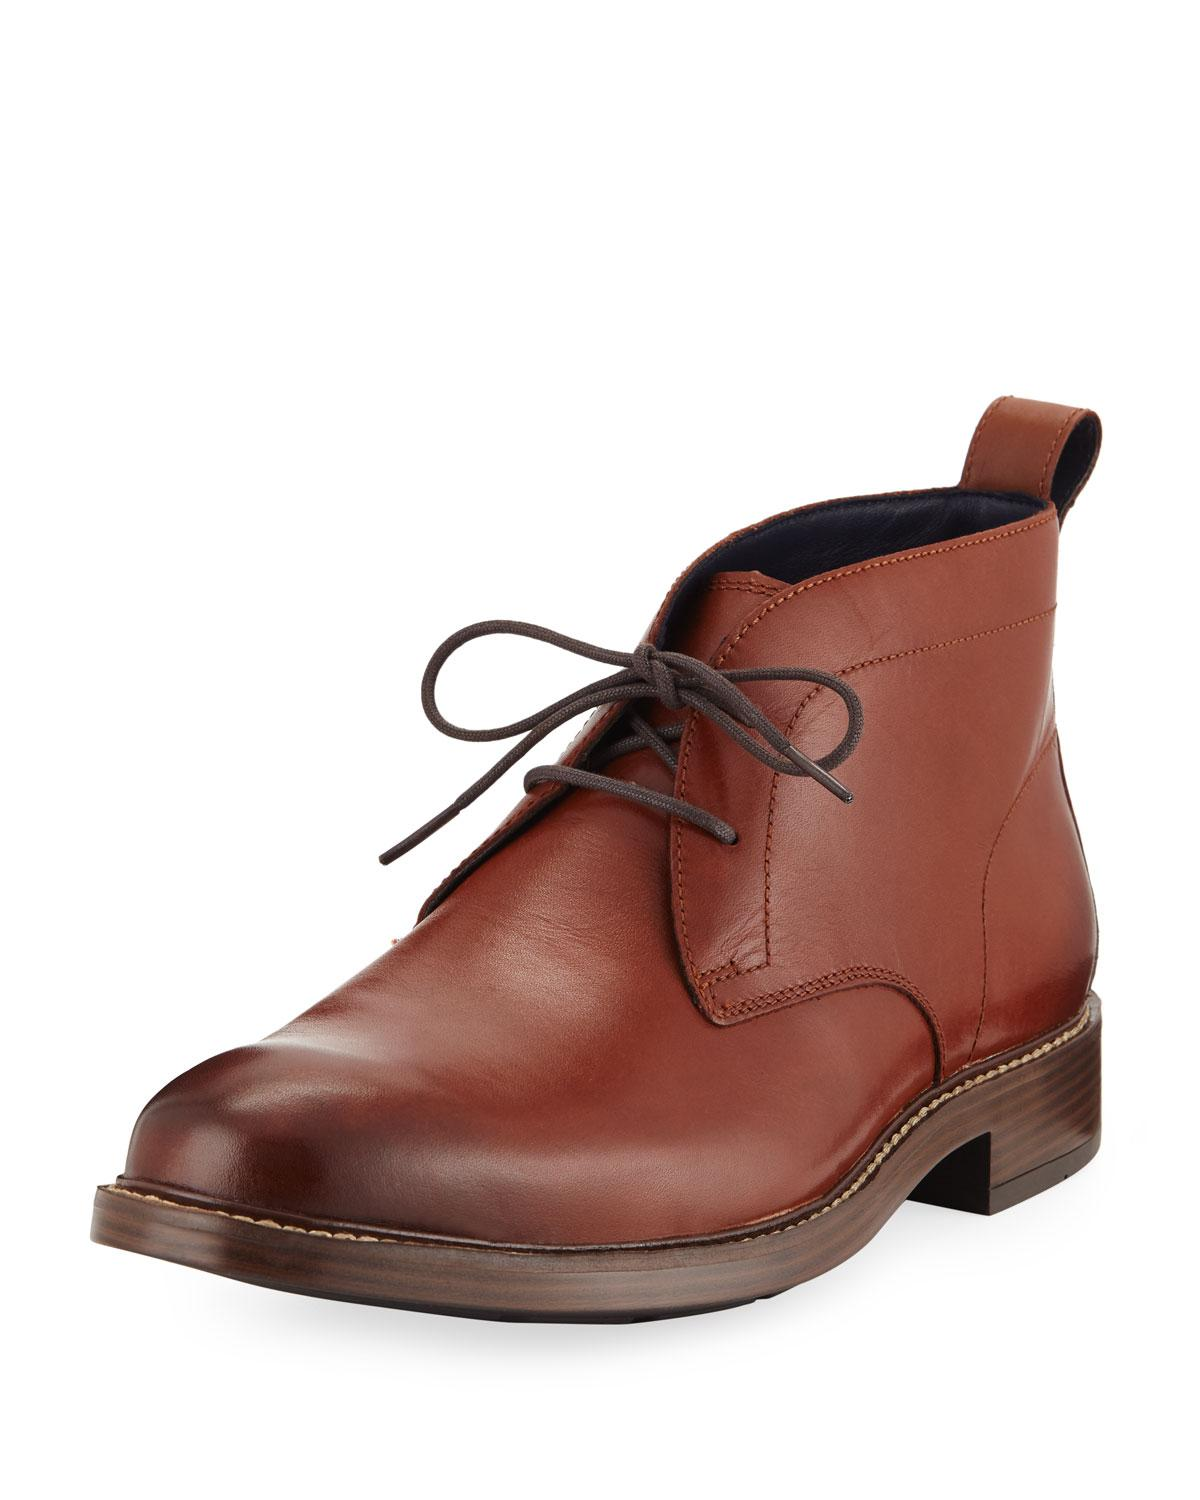 c1d51653ef5 Lyst - Cole Haan Men s Kennedy Grand Chukka Boots Brown in Brown for Men